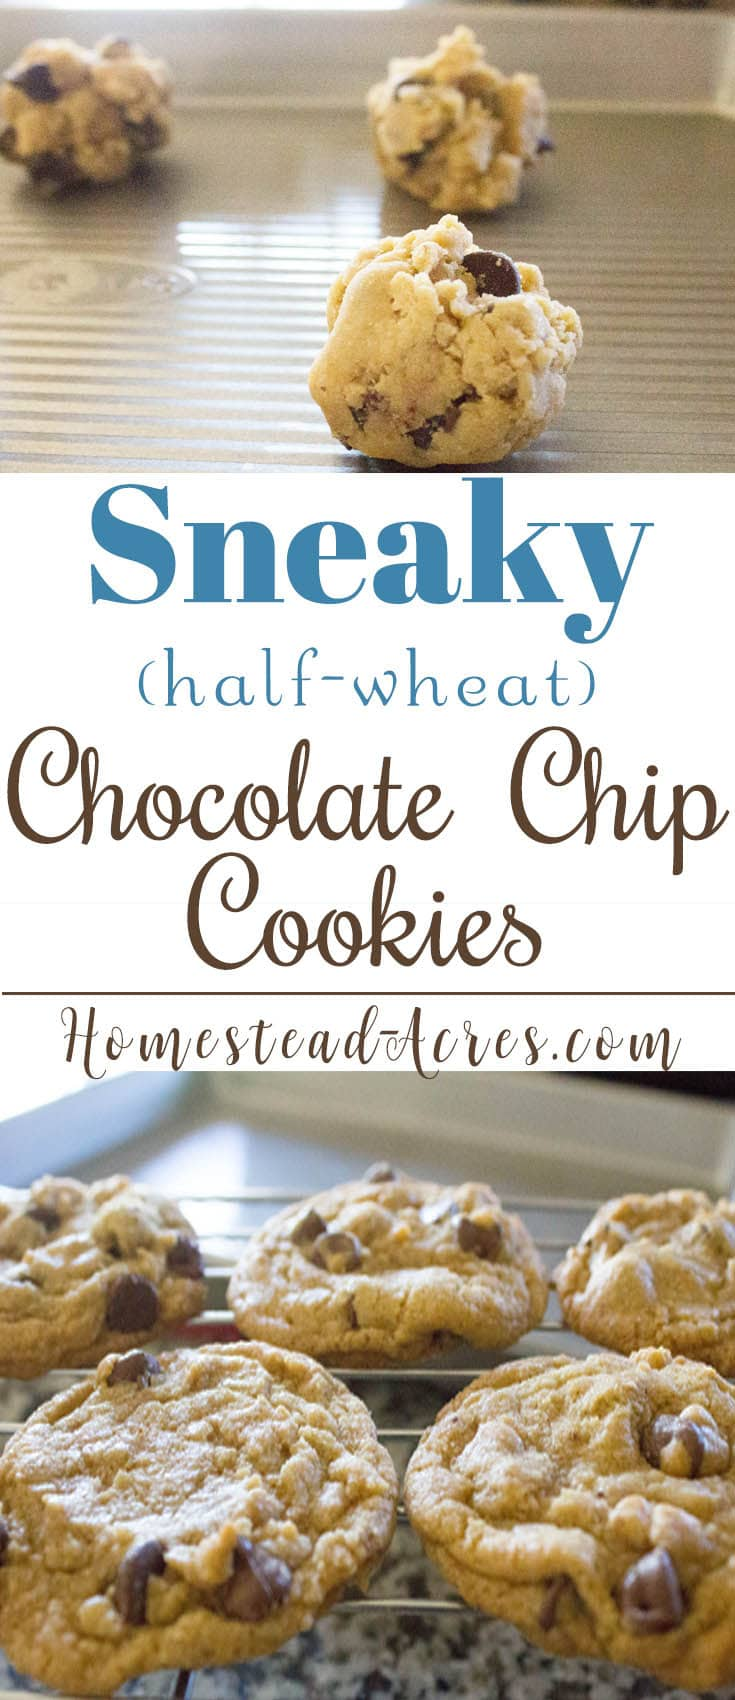 Perfectly Sneaky Chocolate Chip Cookies. Enjoy a healthier chocolate chip cookie with this recipe using half whole wheat flour. So yummy, knowone will ever know! www.homestead-acres.com